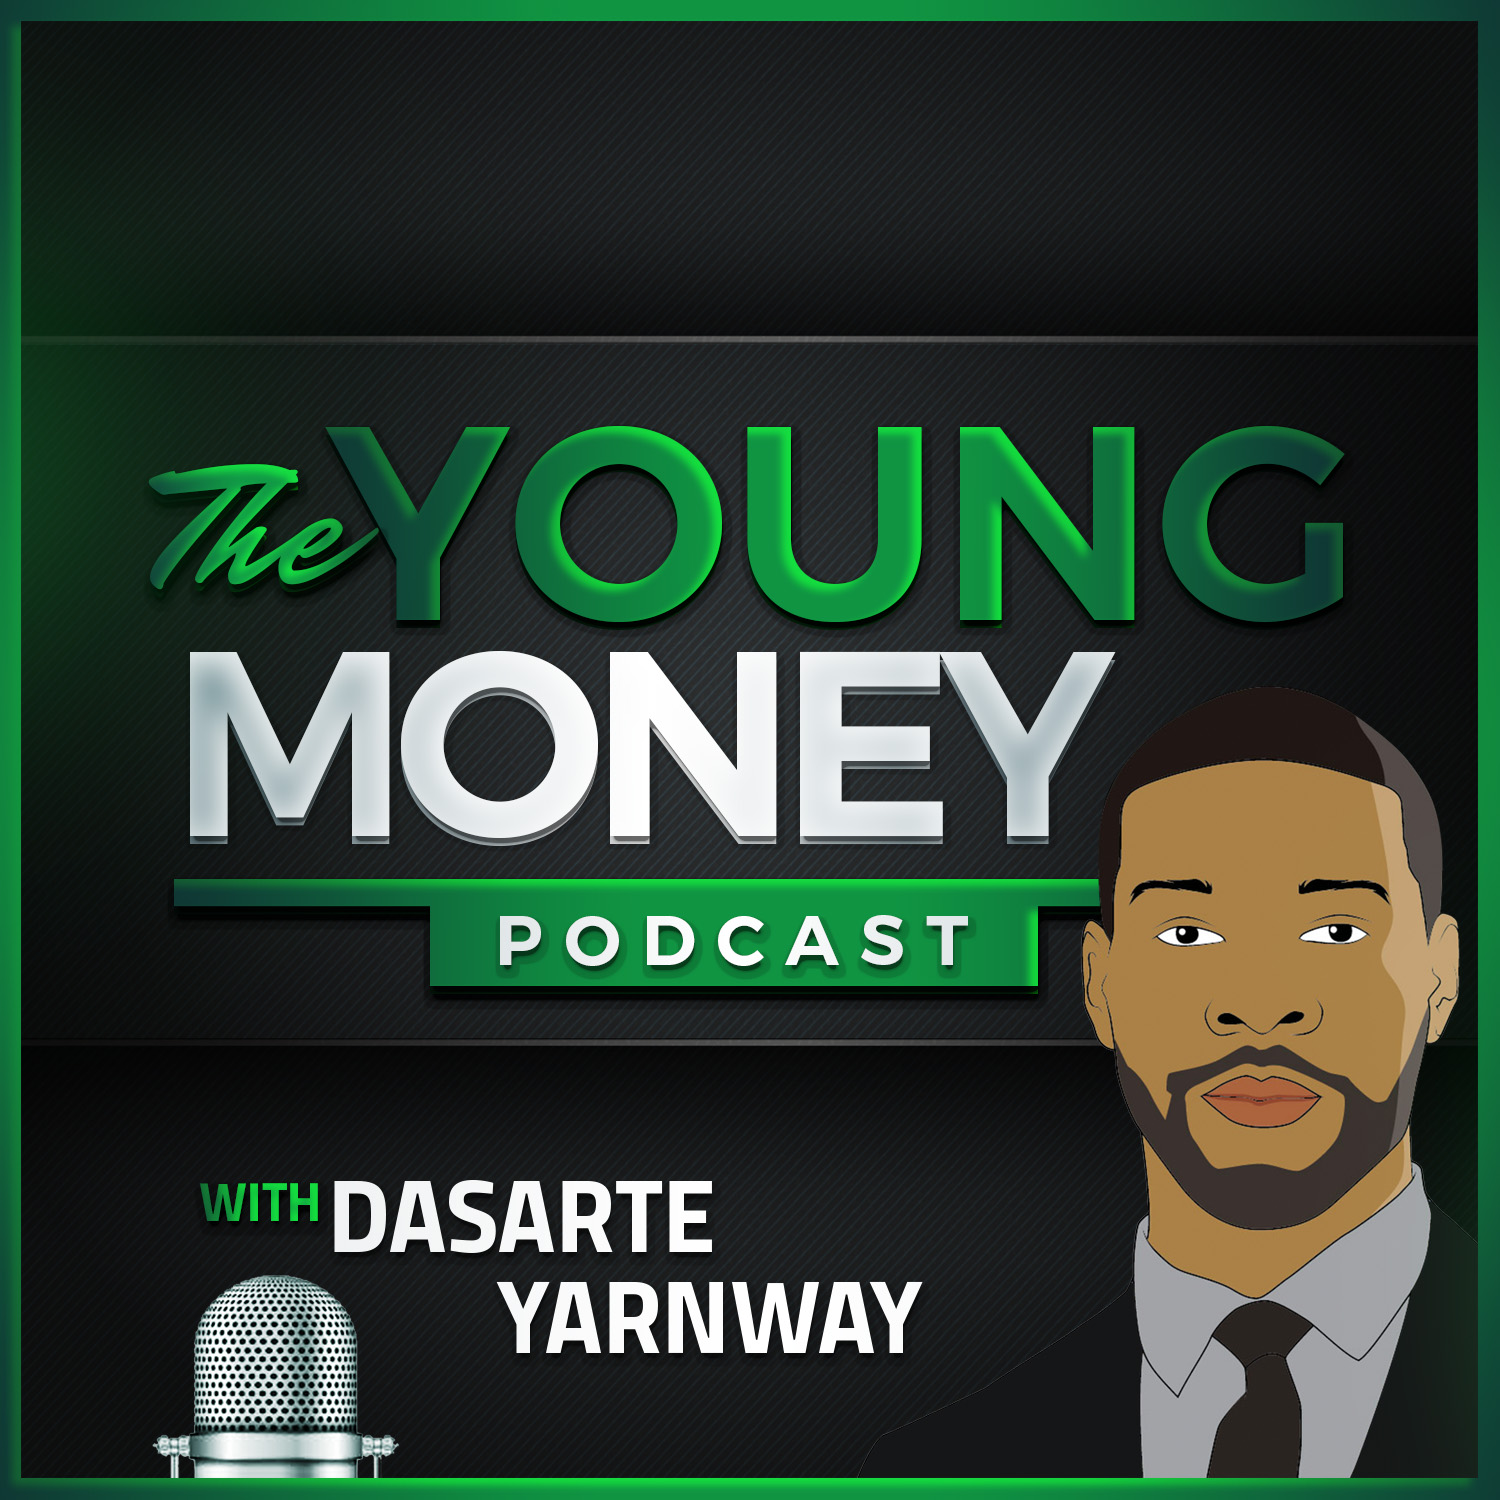 - Based in San Francisco, Dasarte Yarnway is the Founder and Managing Director of Berknell Financial Group. His podcasts explore personal finance topics, capital markets and all things motivational.In this episode, I am joined by Dr. Alicia Hodge of Helpmehodge, an independent therapy practice, and we focus on helping professionals become unstuck. In this episode, she shares her formula for self-care, her journey into therapy and how we can help others do the same.